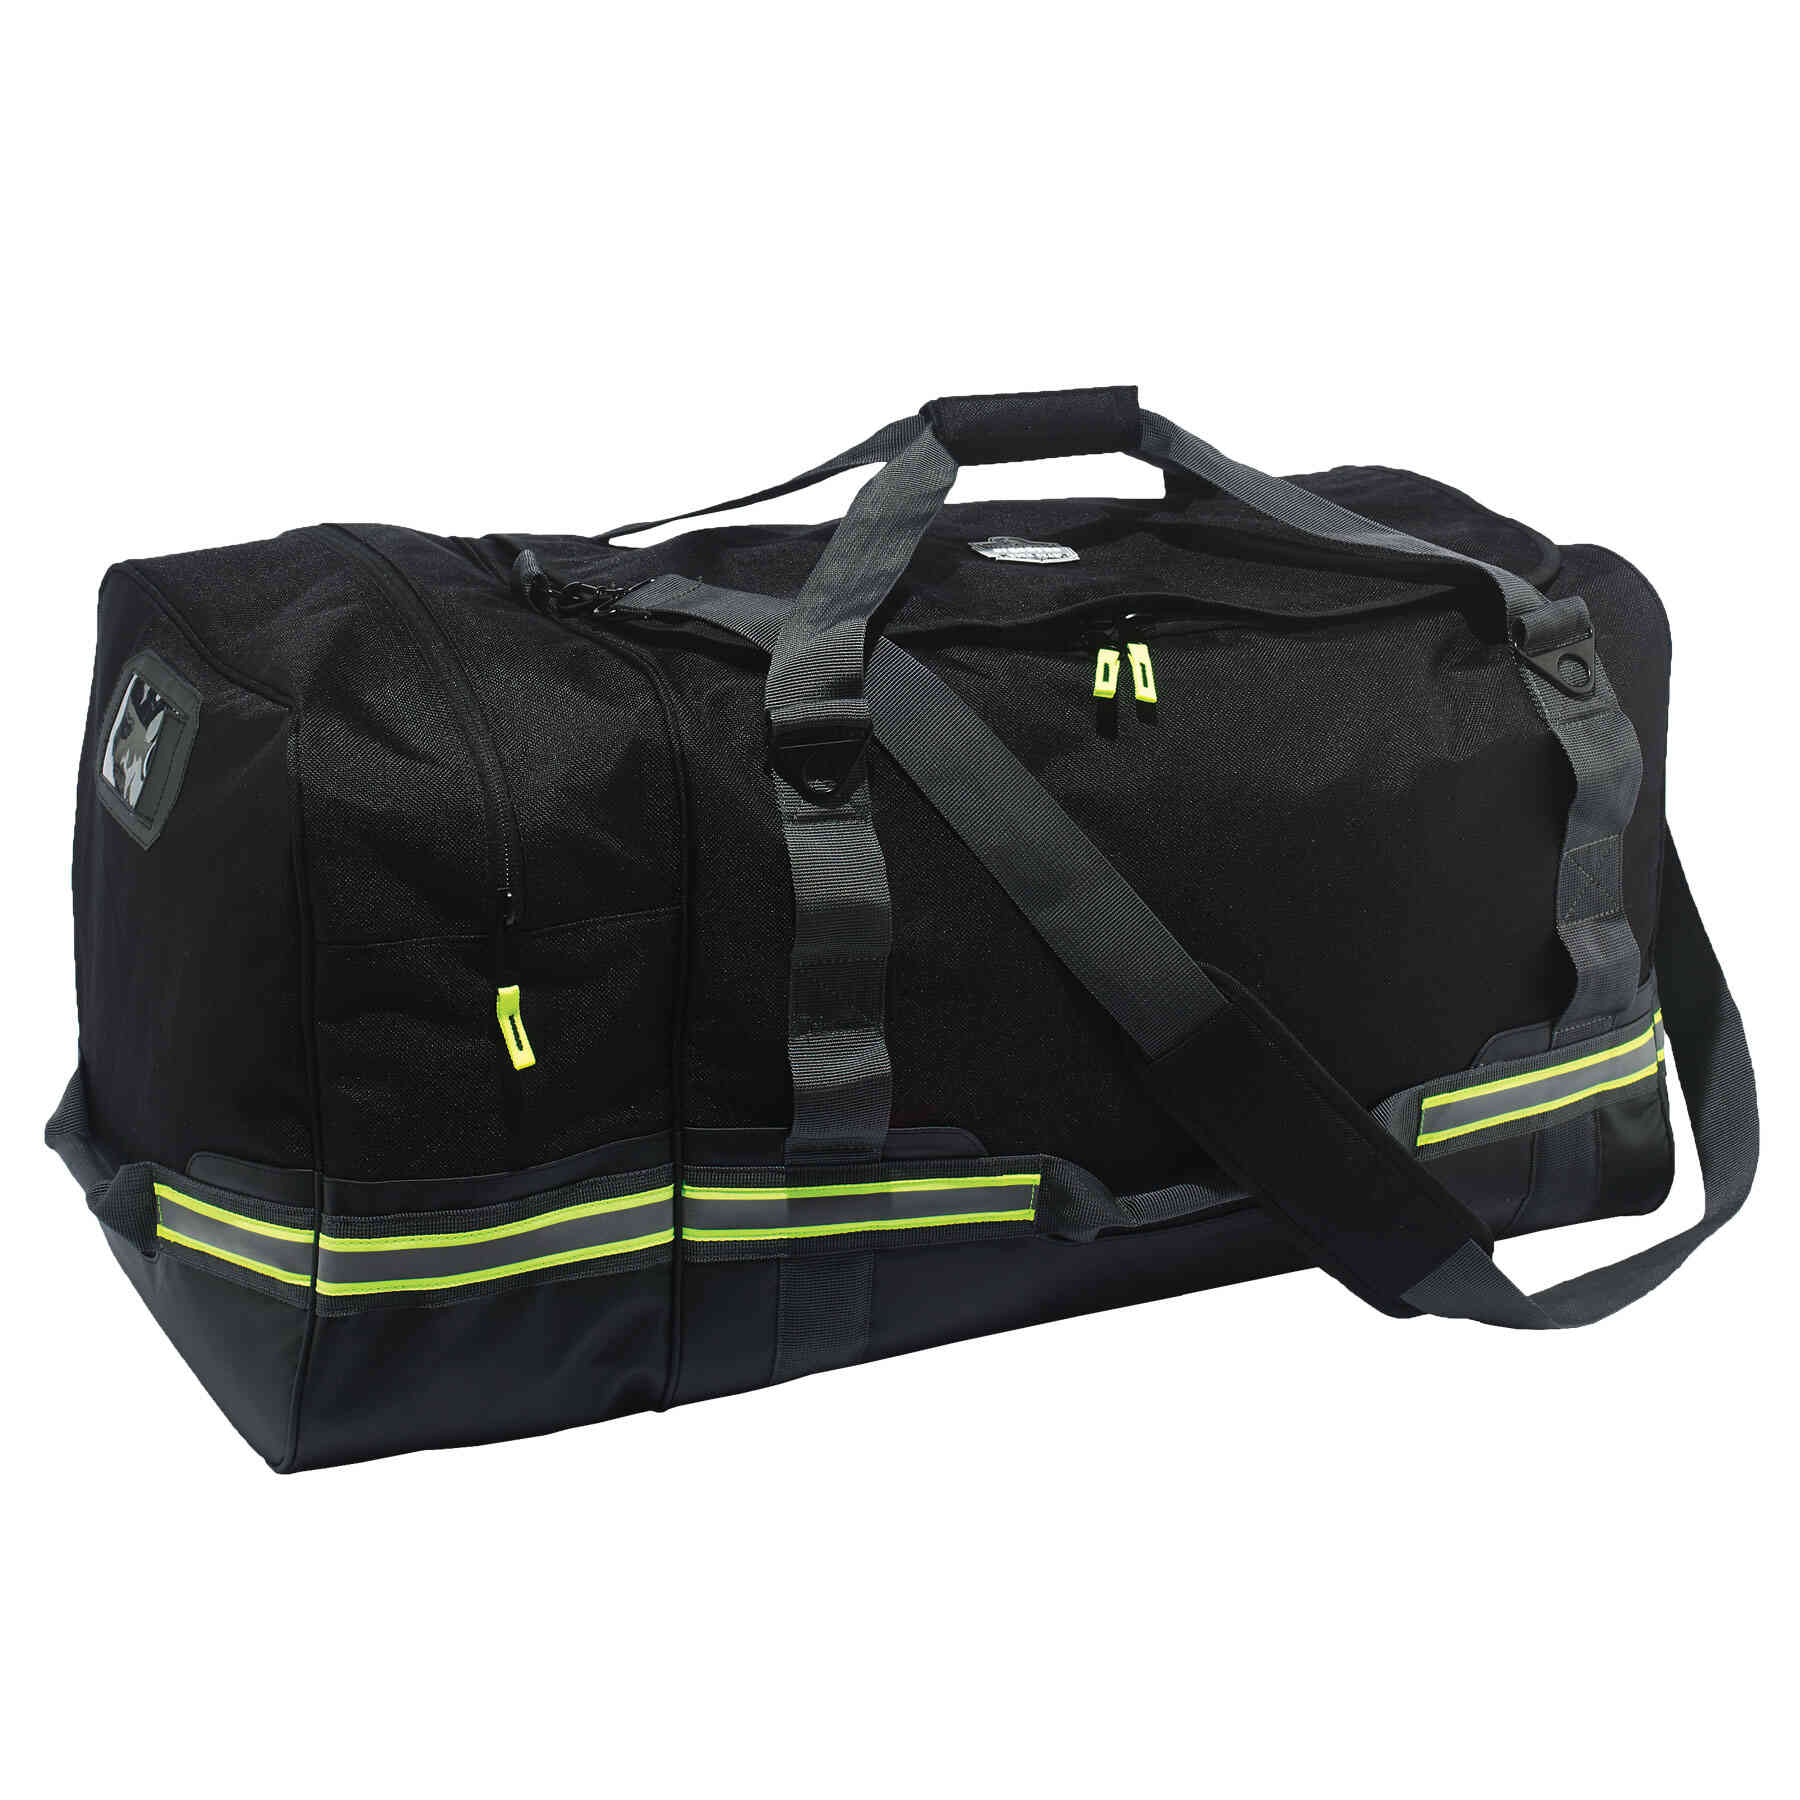 Arsenal 5008 Fire & Safety Gear Bag